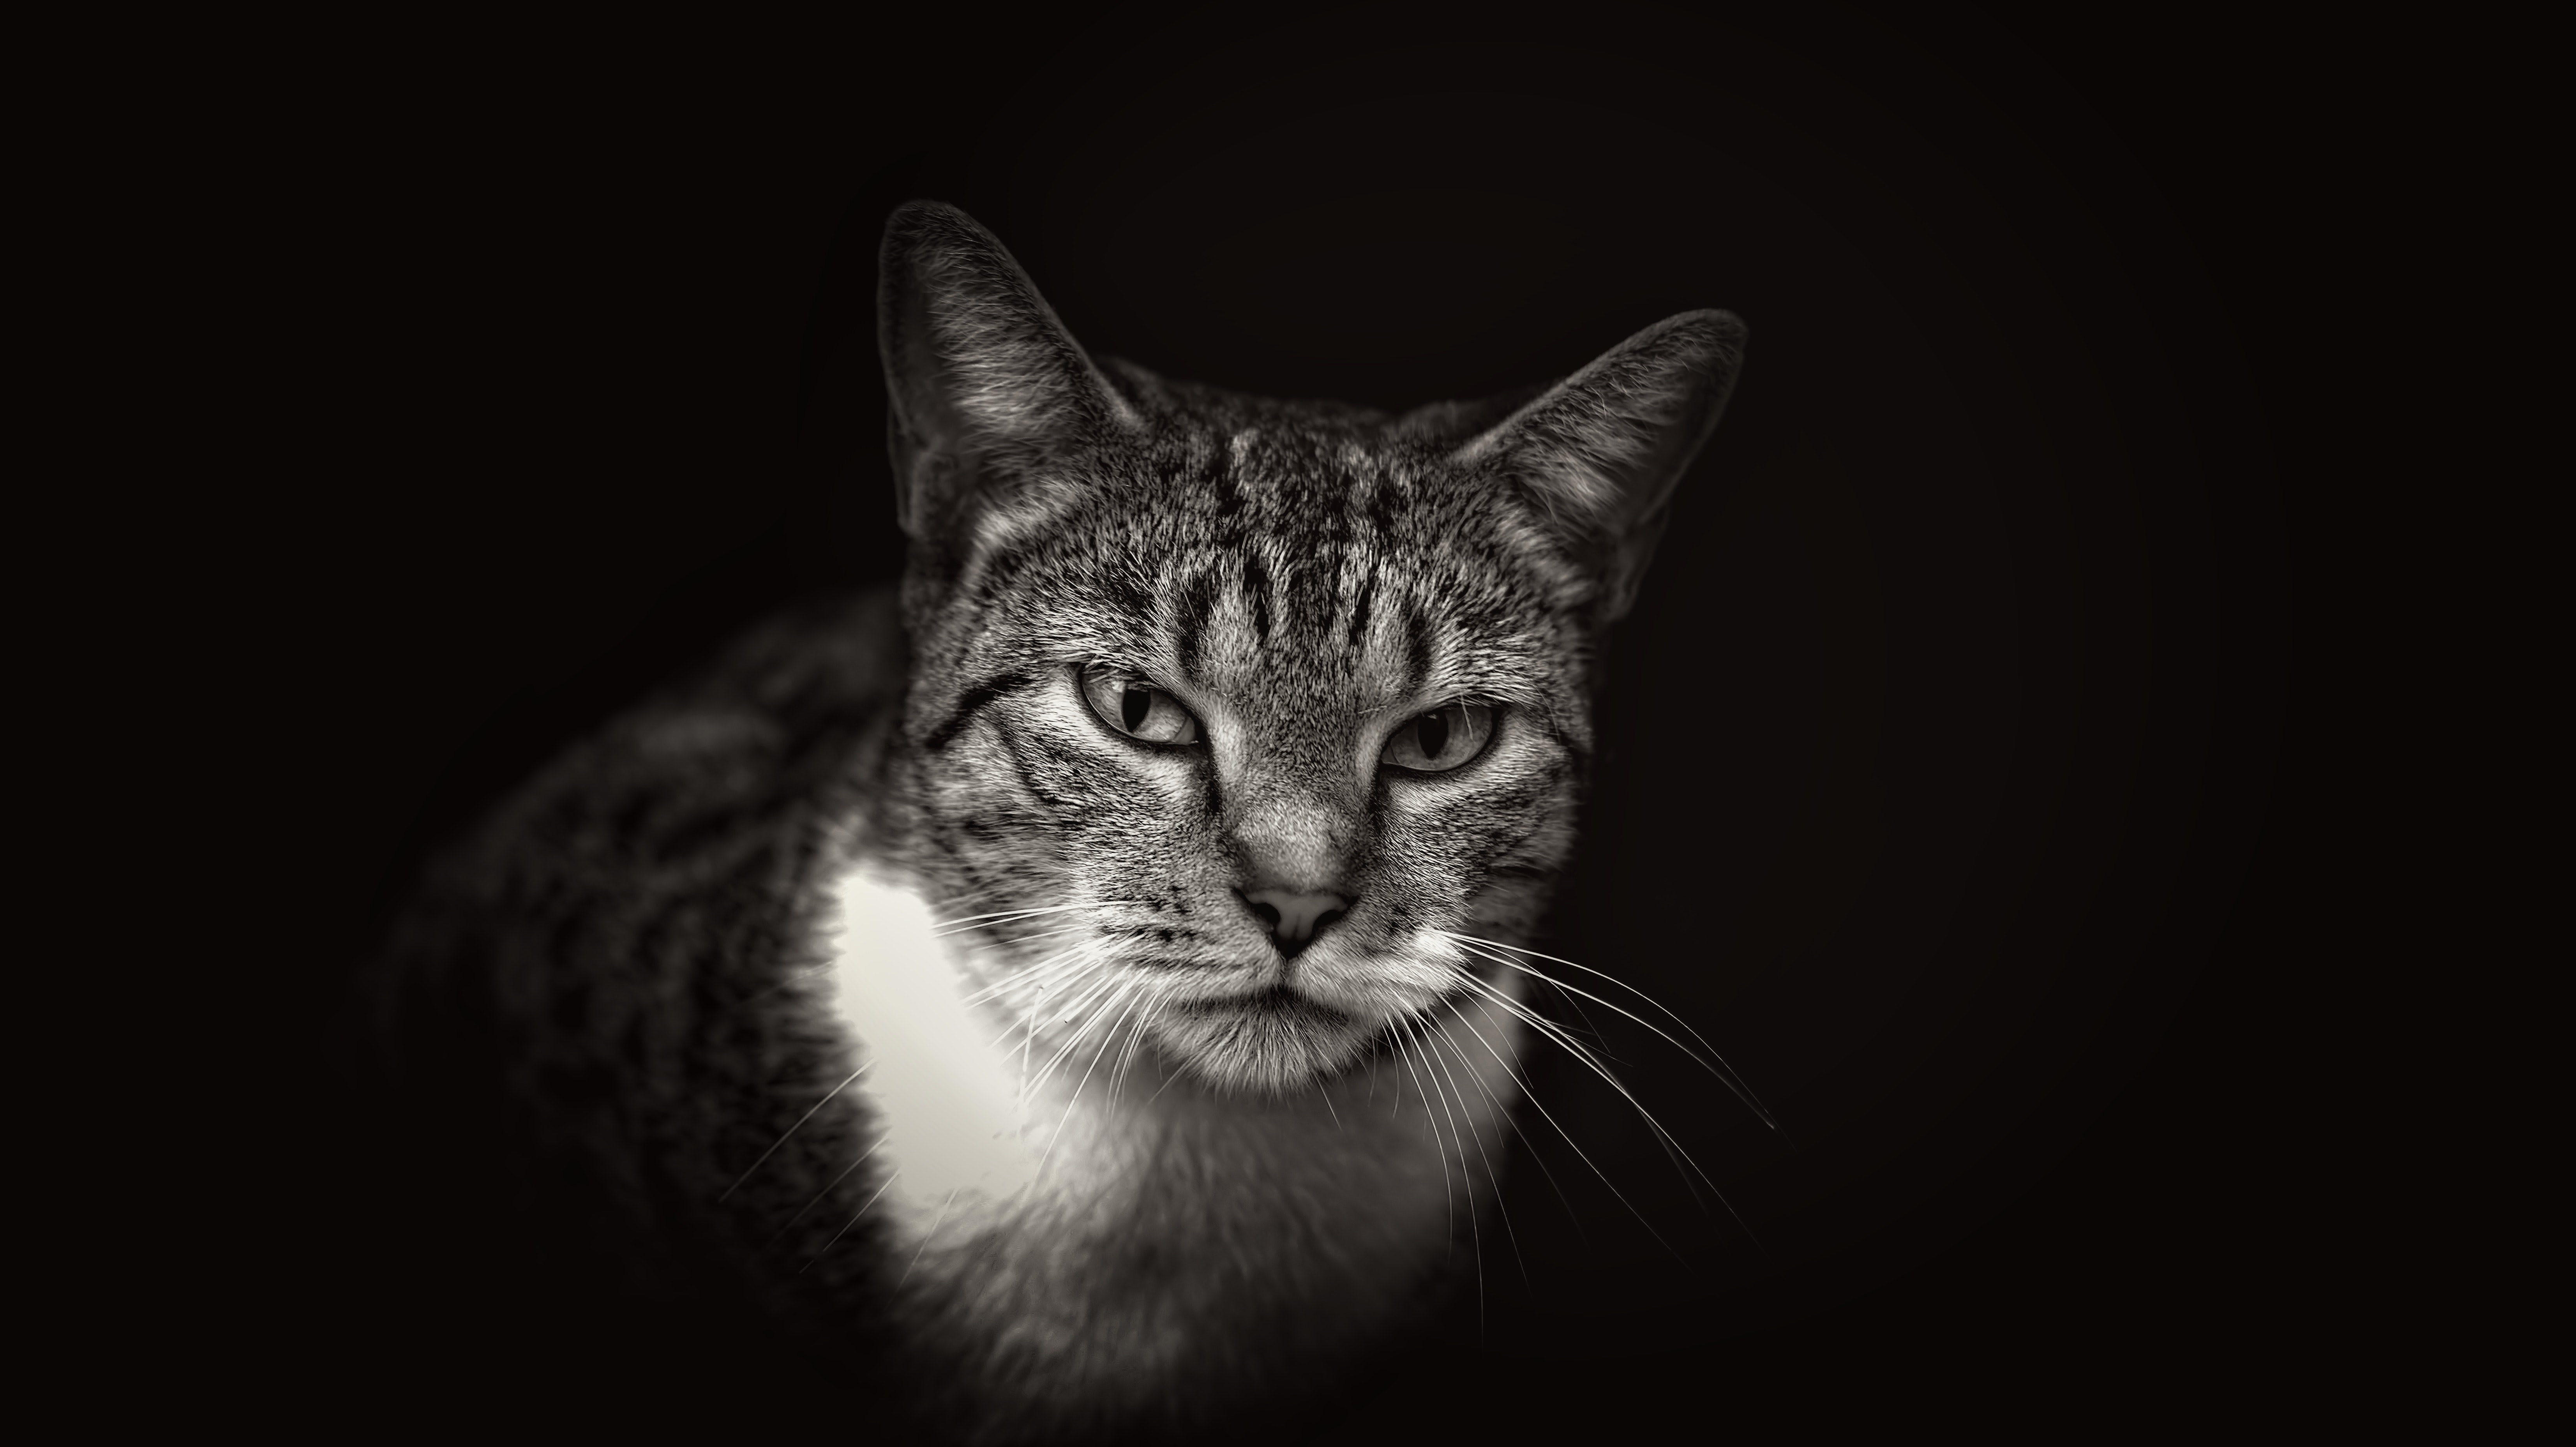 Black and white close up of domestic cat with white neck on dark background in Miami